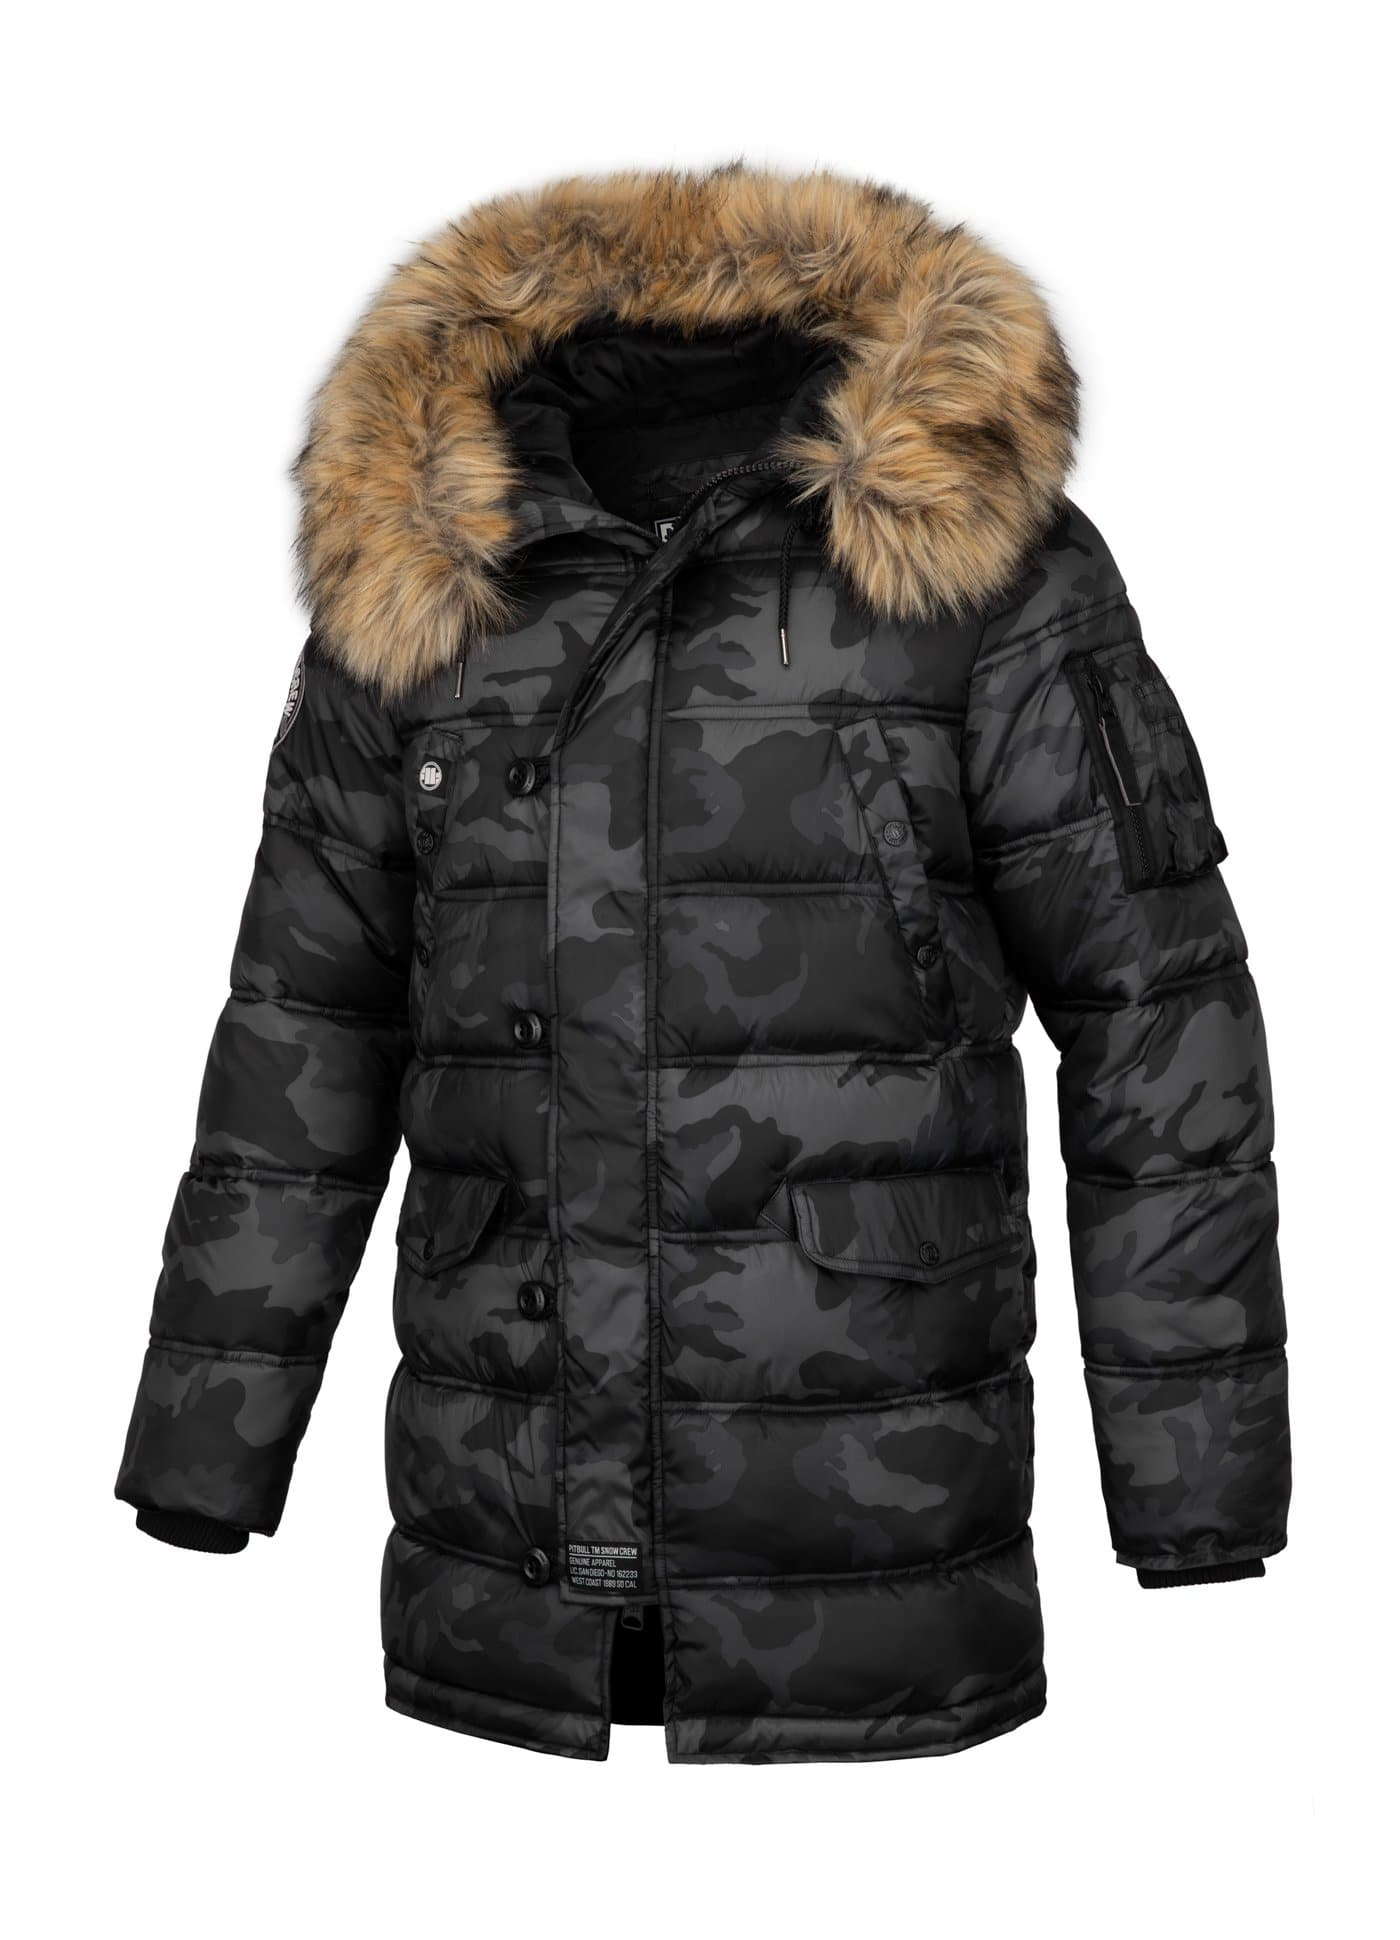 Kurtka Parka KINGSTON All Black Camo - kup z Pit Bull West Coast Oficjalny Sklep